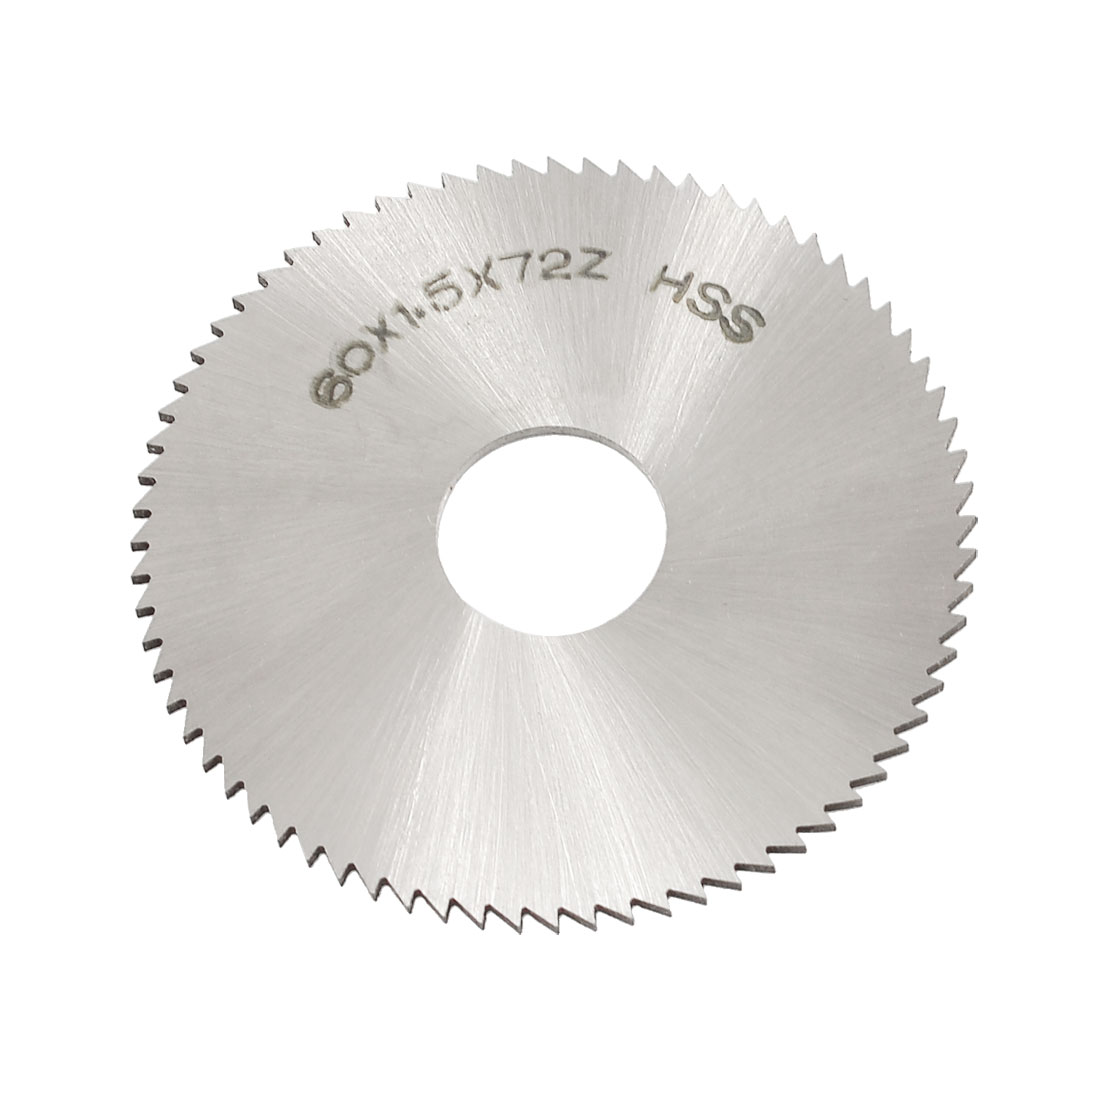 60mm x 1.5mm x 16mm 72T HSS Steel Round Slitting Saw Cutter